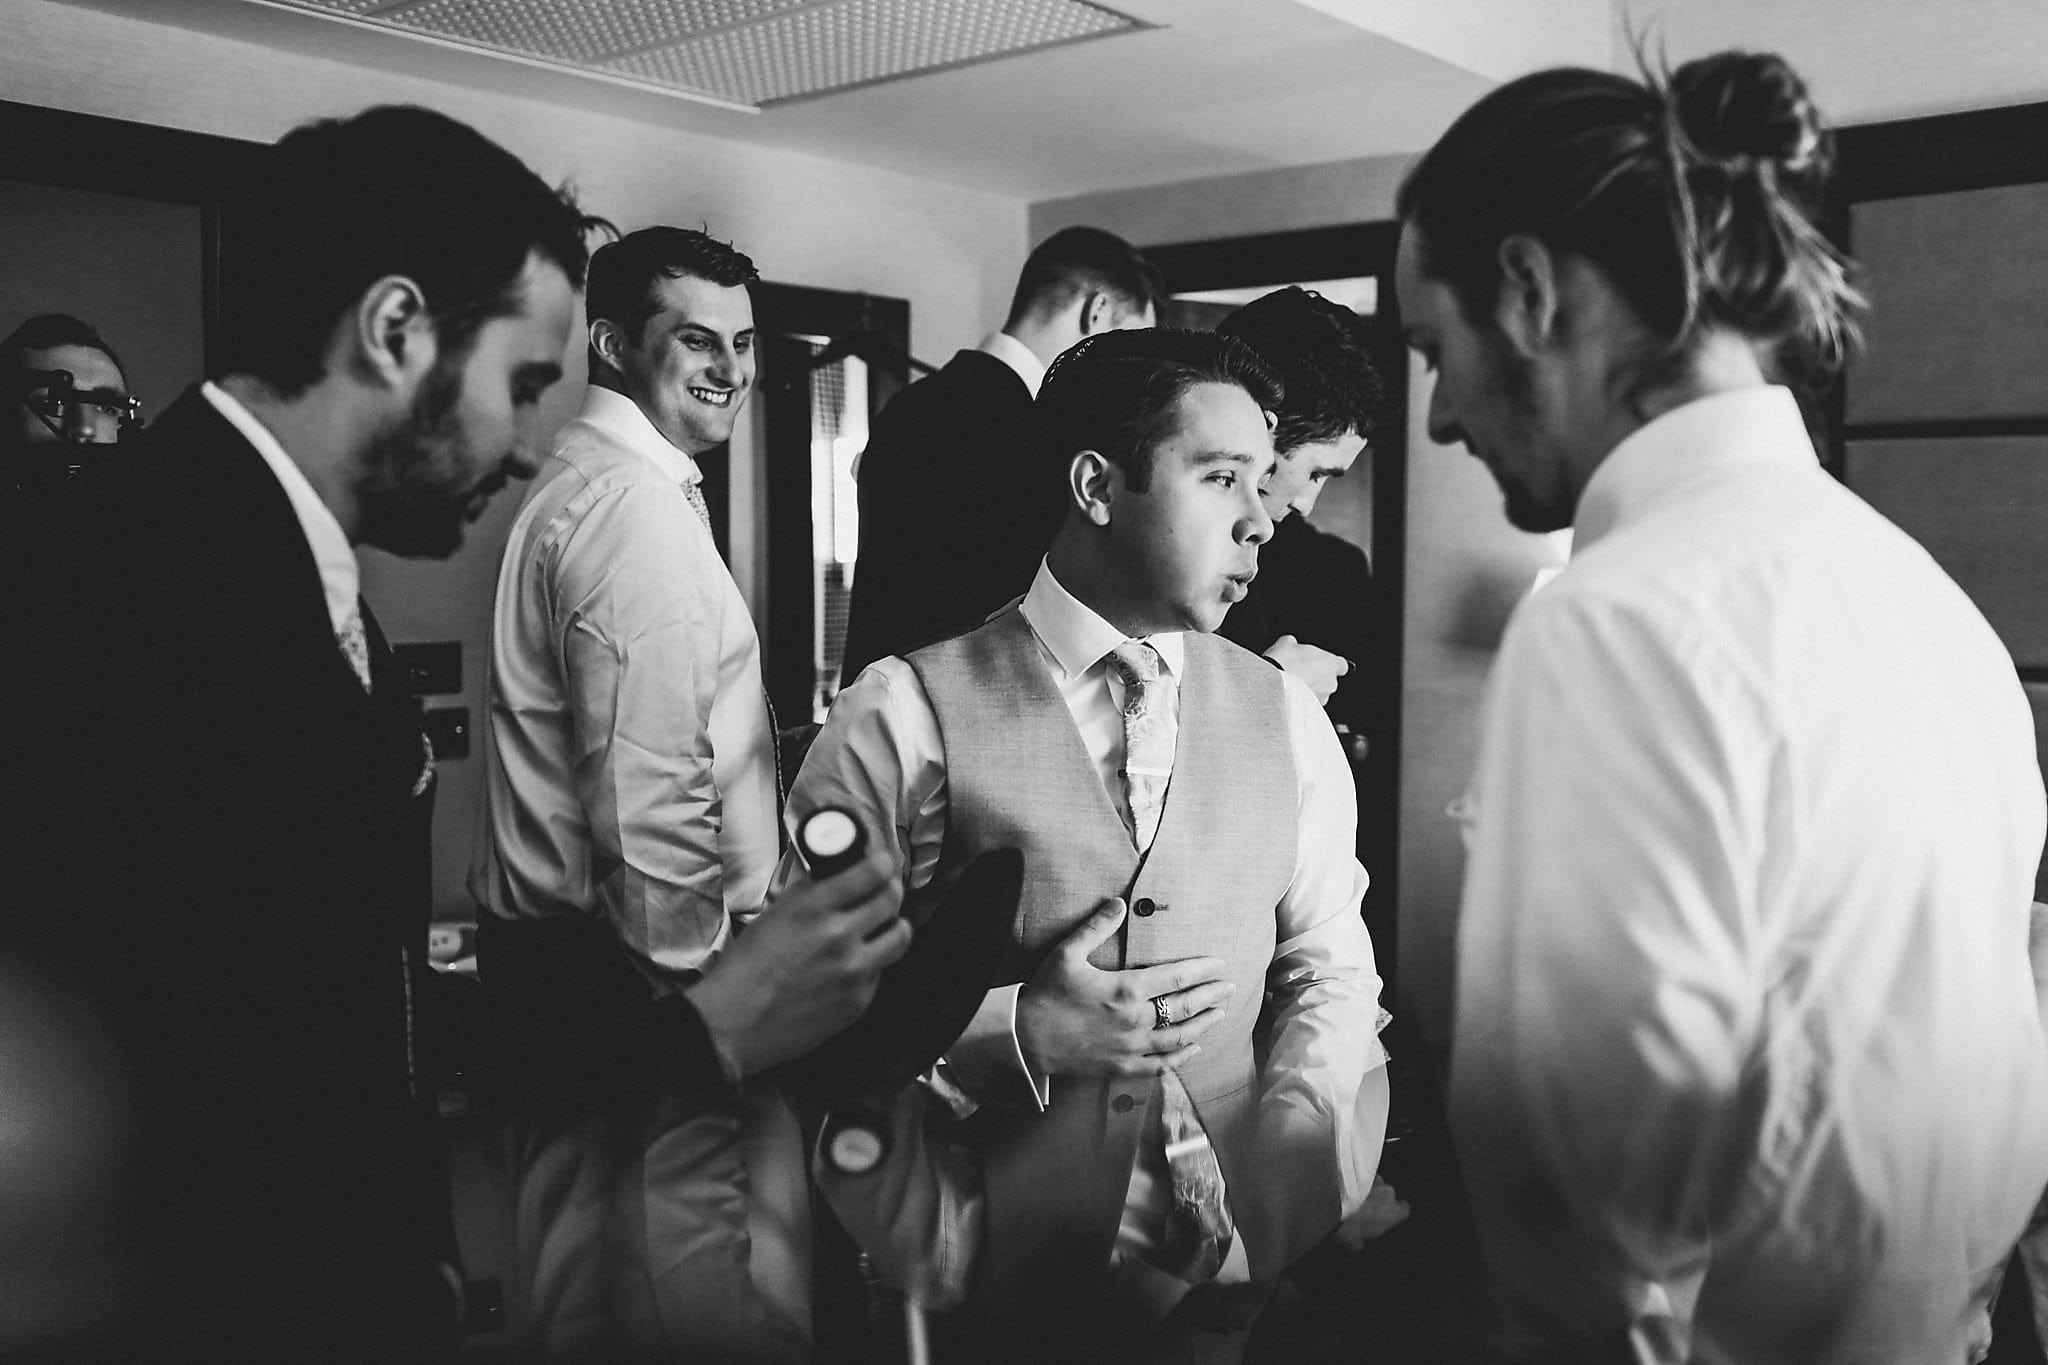 Black and white shot of groom and groomsmen getting ready